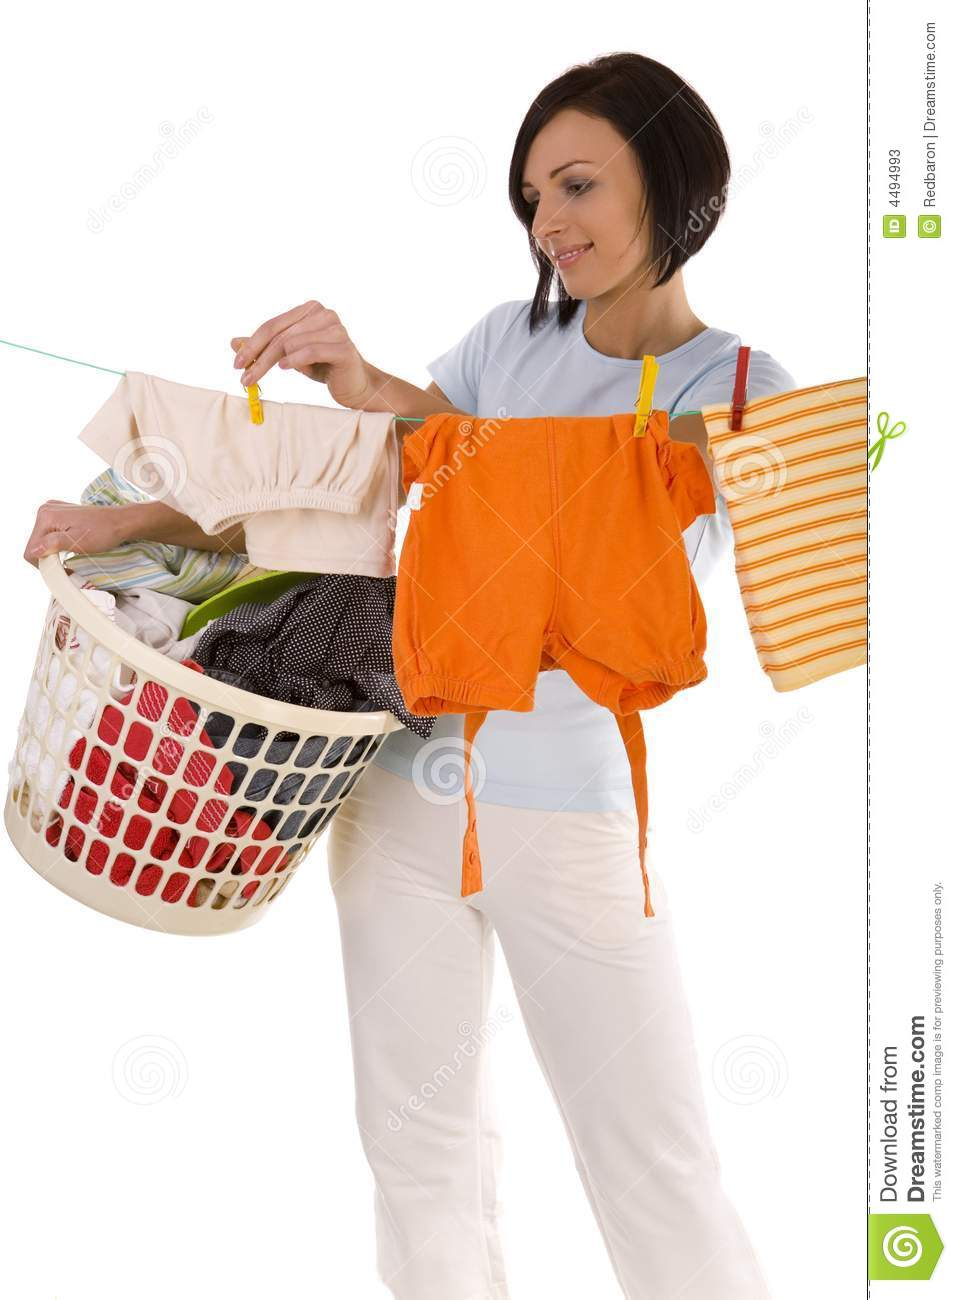 Pegging Clothes On Line Stock Photos Image 4494993